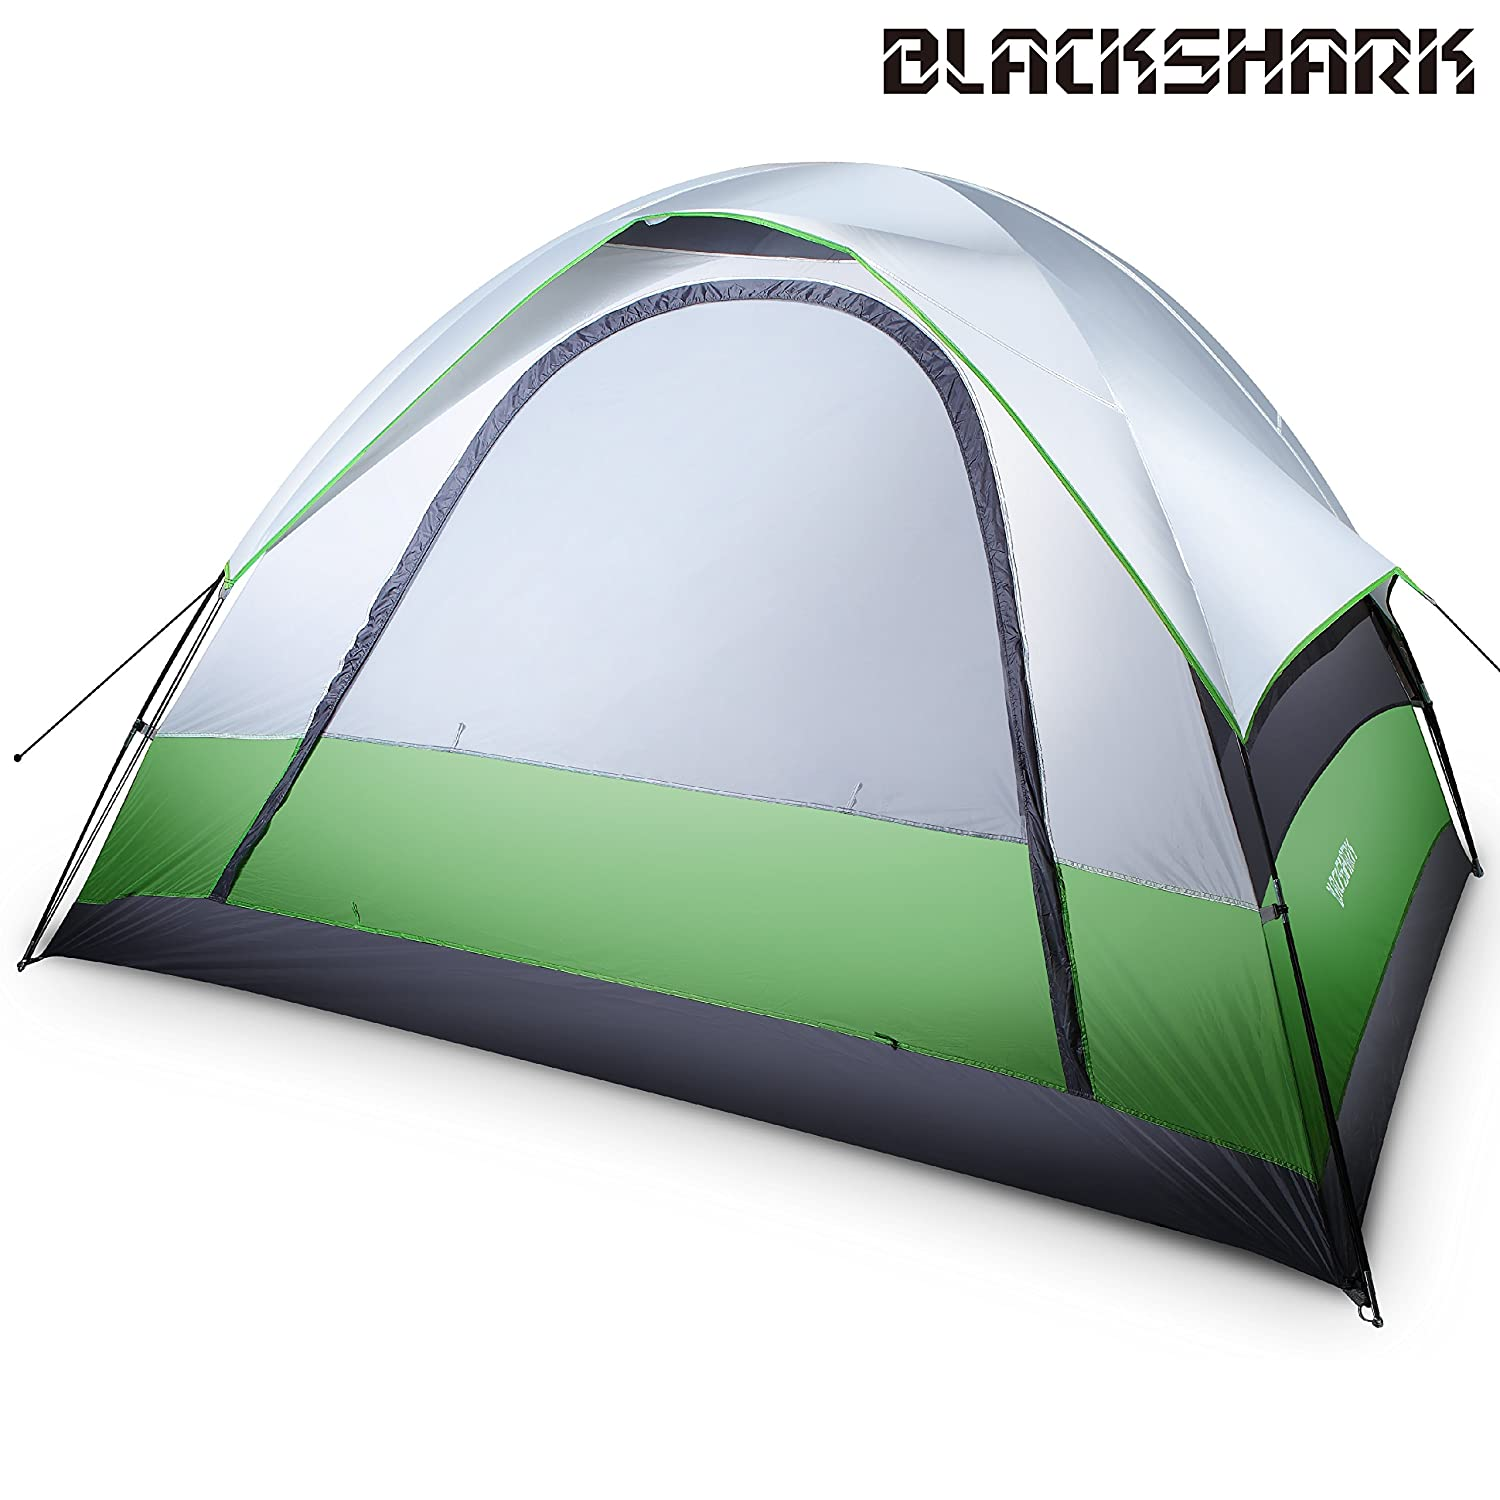 Amazon.com  BlackShark TE02 4-person Lightweight Waterproof Dome Family Tent for Traveling C&ing Hiking with Portable Bag  Sports u0026 Outdoors  sc 1 st  Amazon.com & Amazon.com : BlackShark TE02 4-person Lightweight Waterproof Dome ...